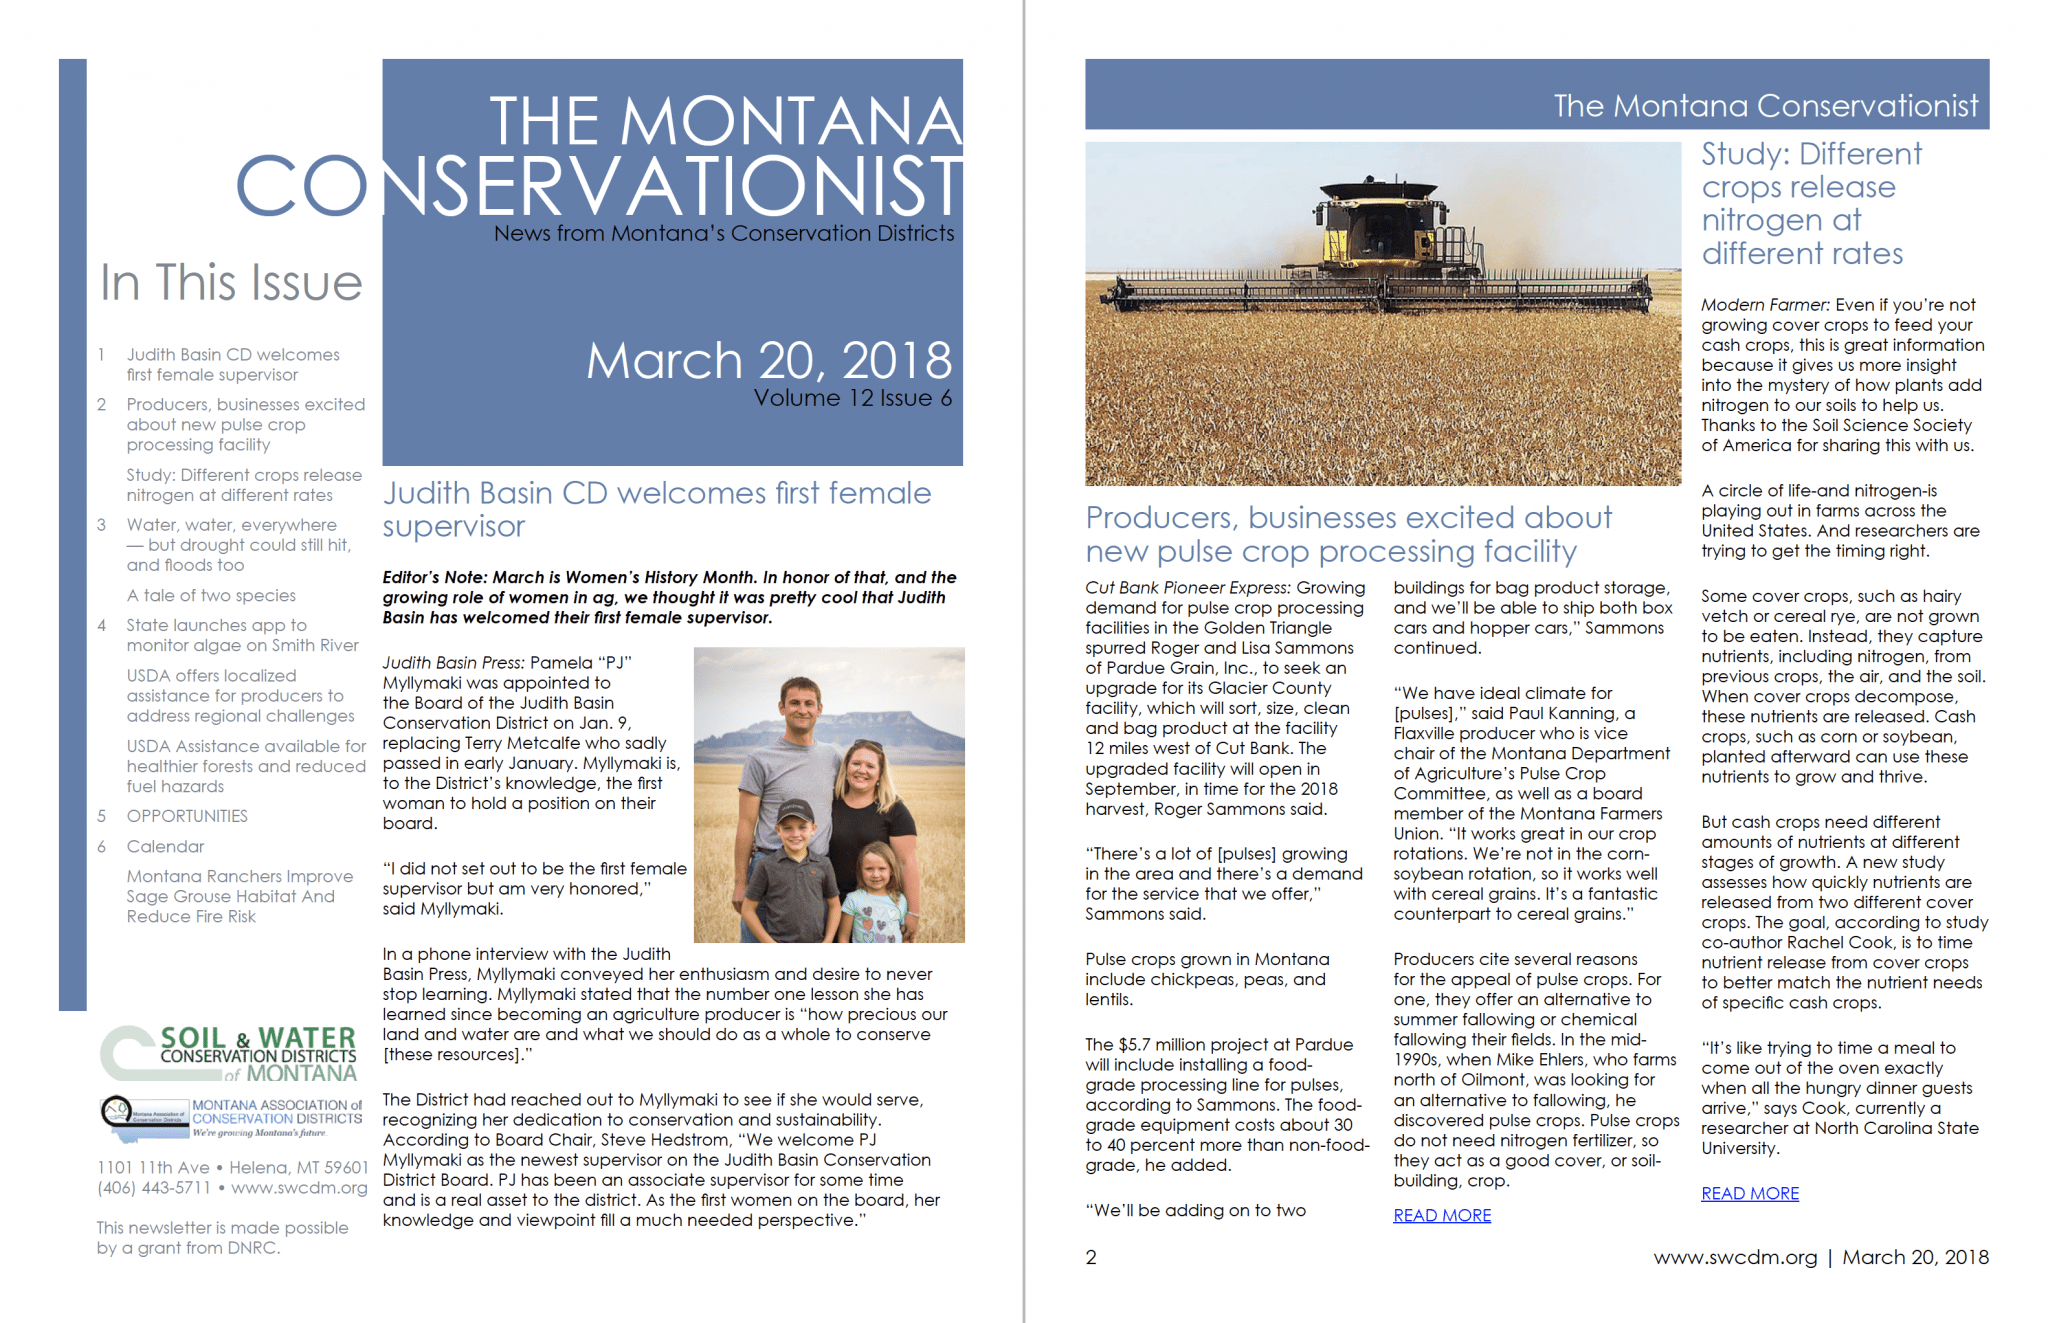 The Montana Conservationist, March 20